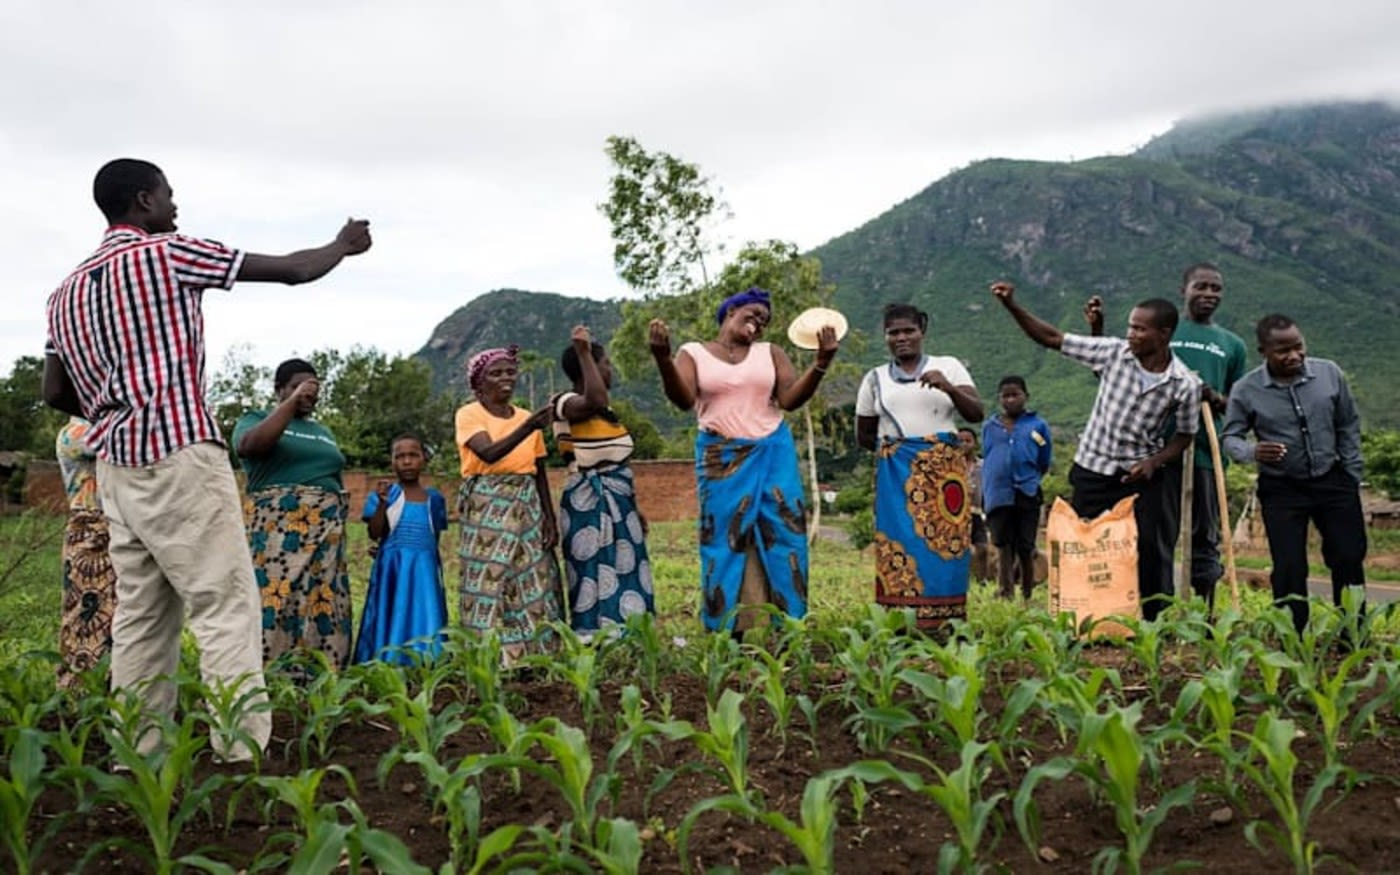 People on land with crops growing